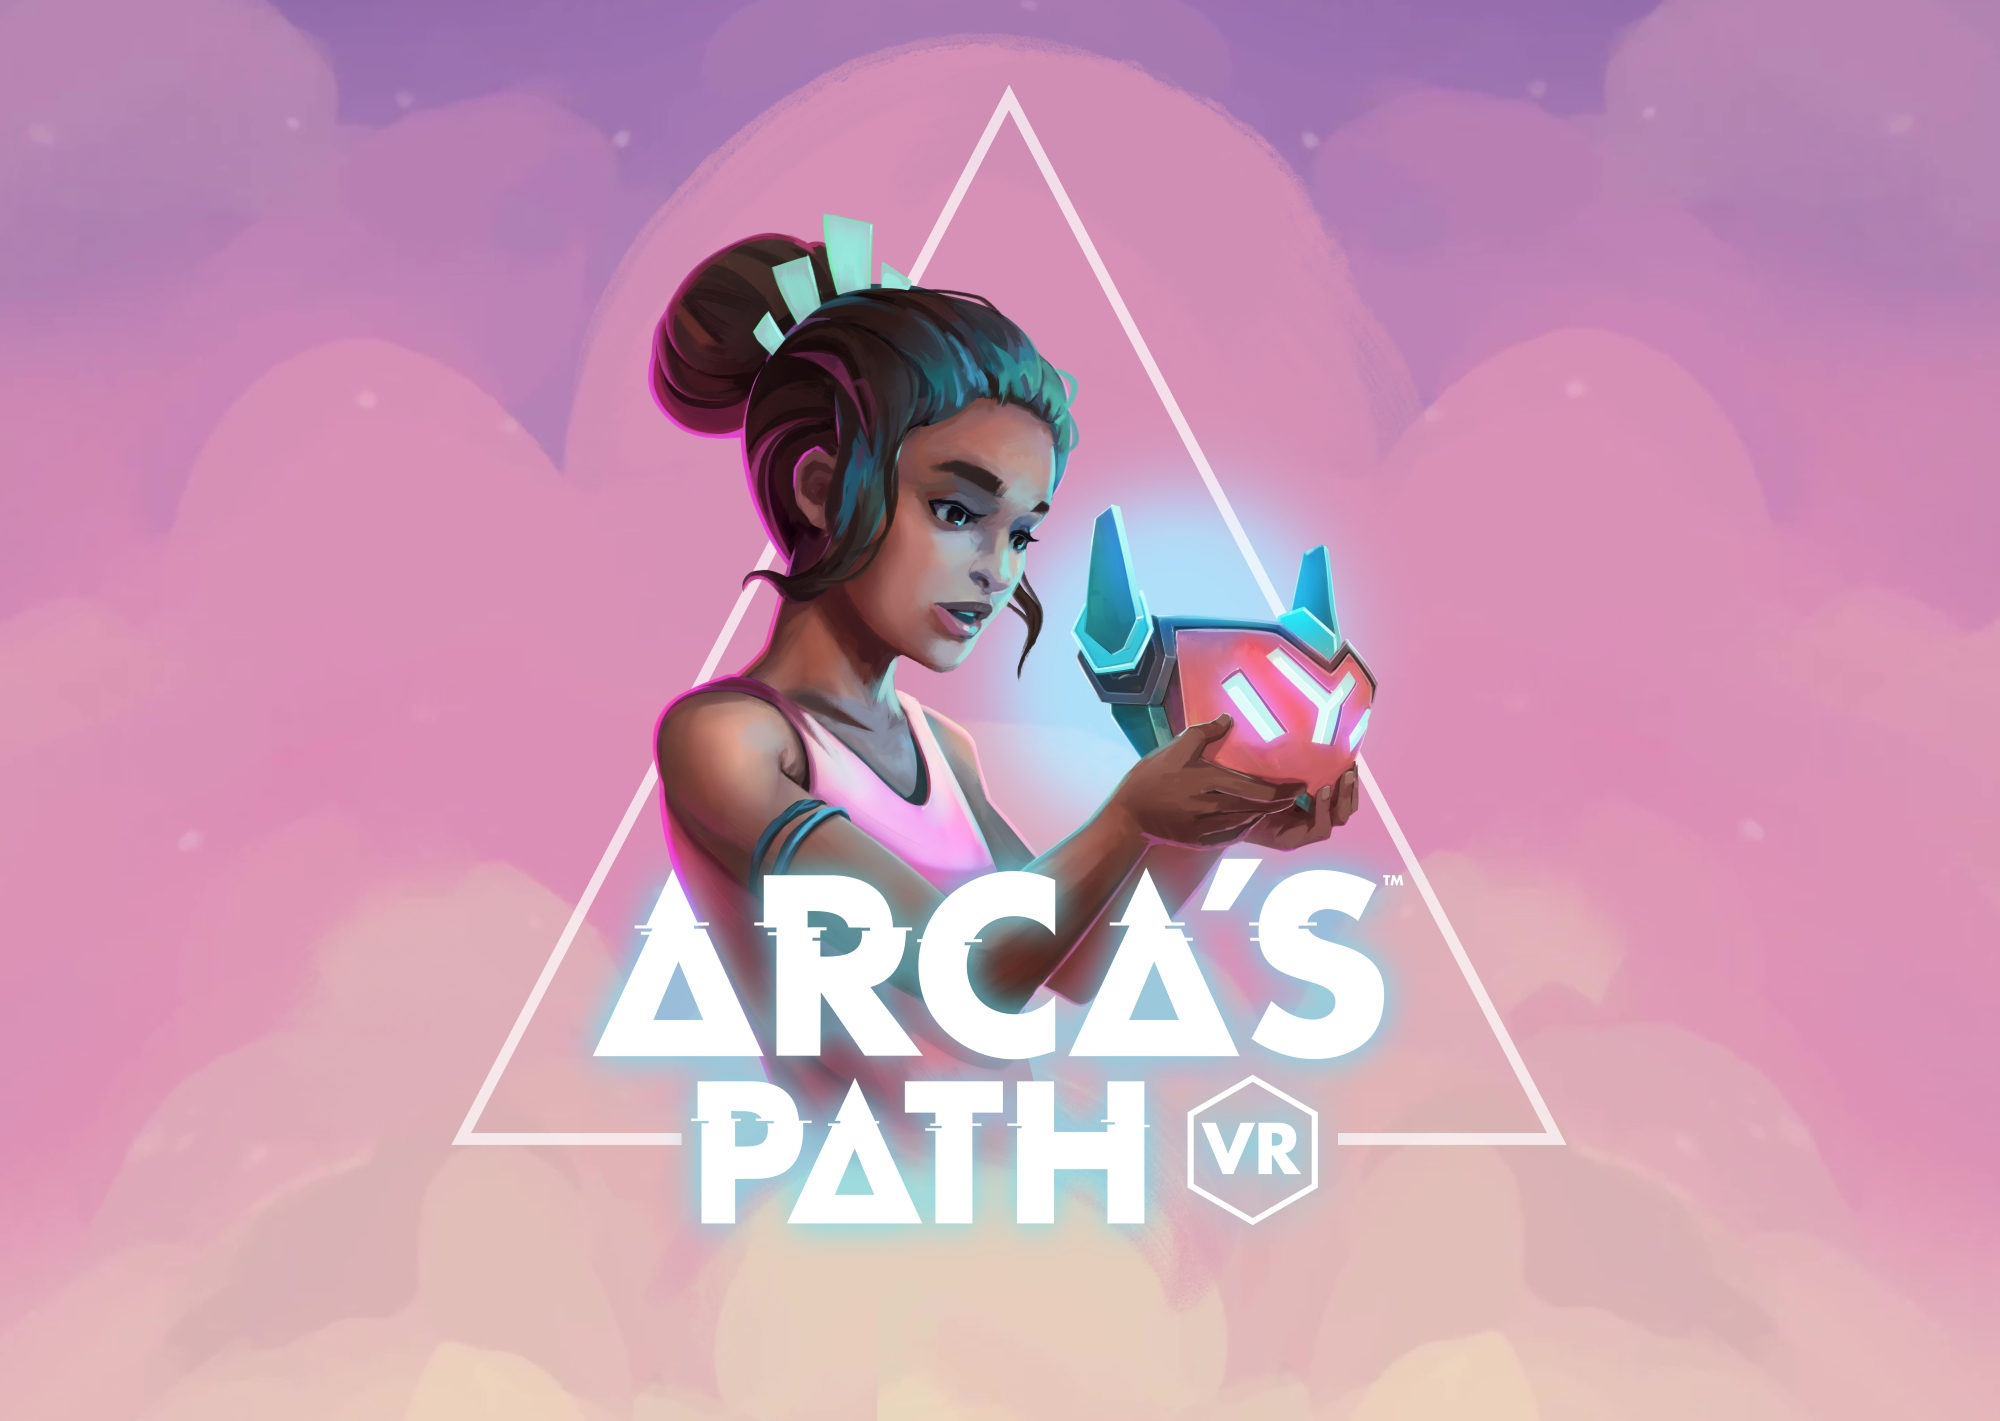 Arca's Path VR - a new VR game and a new VR studio